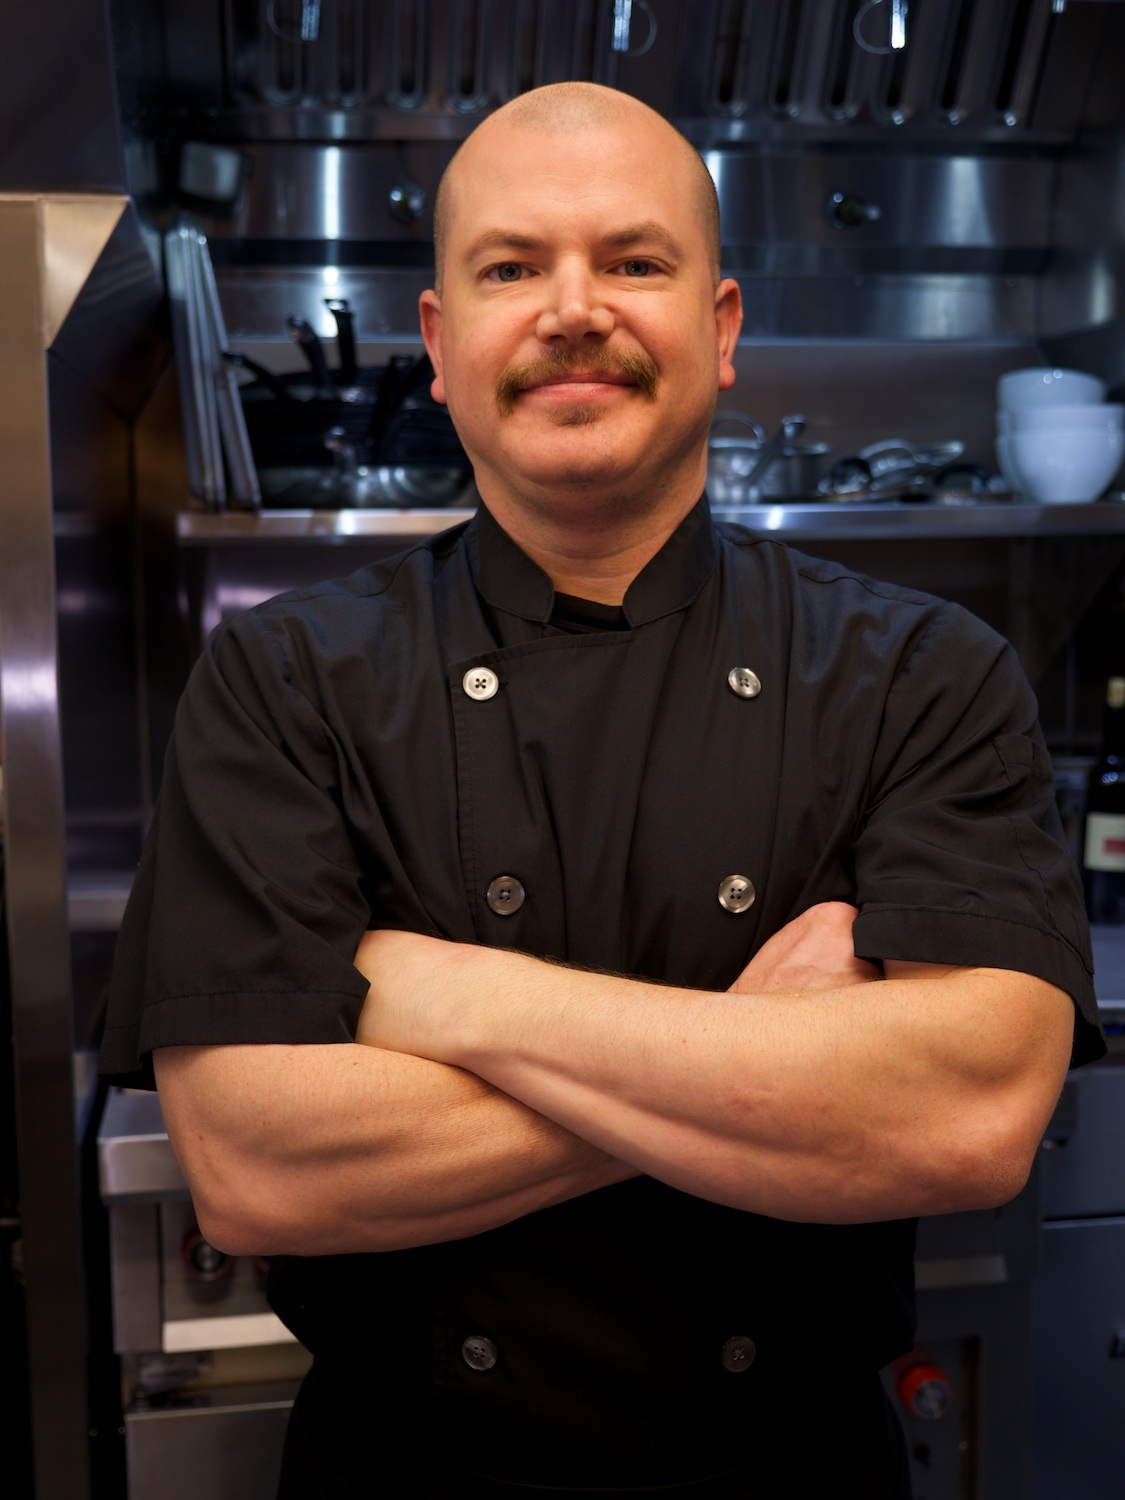 Jim, the chef at Liquid Assets, a local favorite restaurant and wine bar, and wonderful client. Just wait until you see their new web page… coming soon!